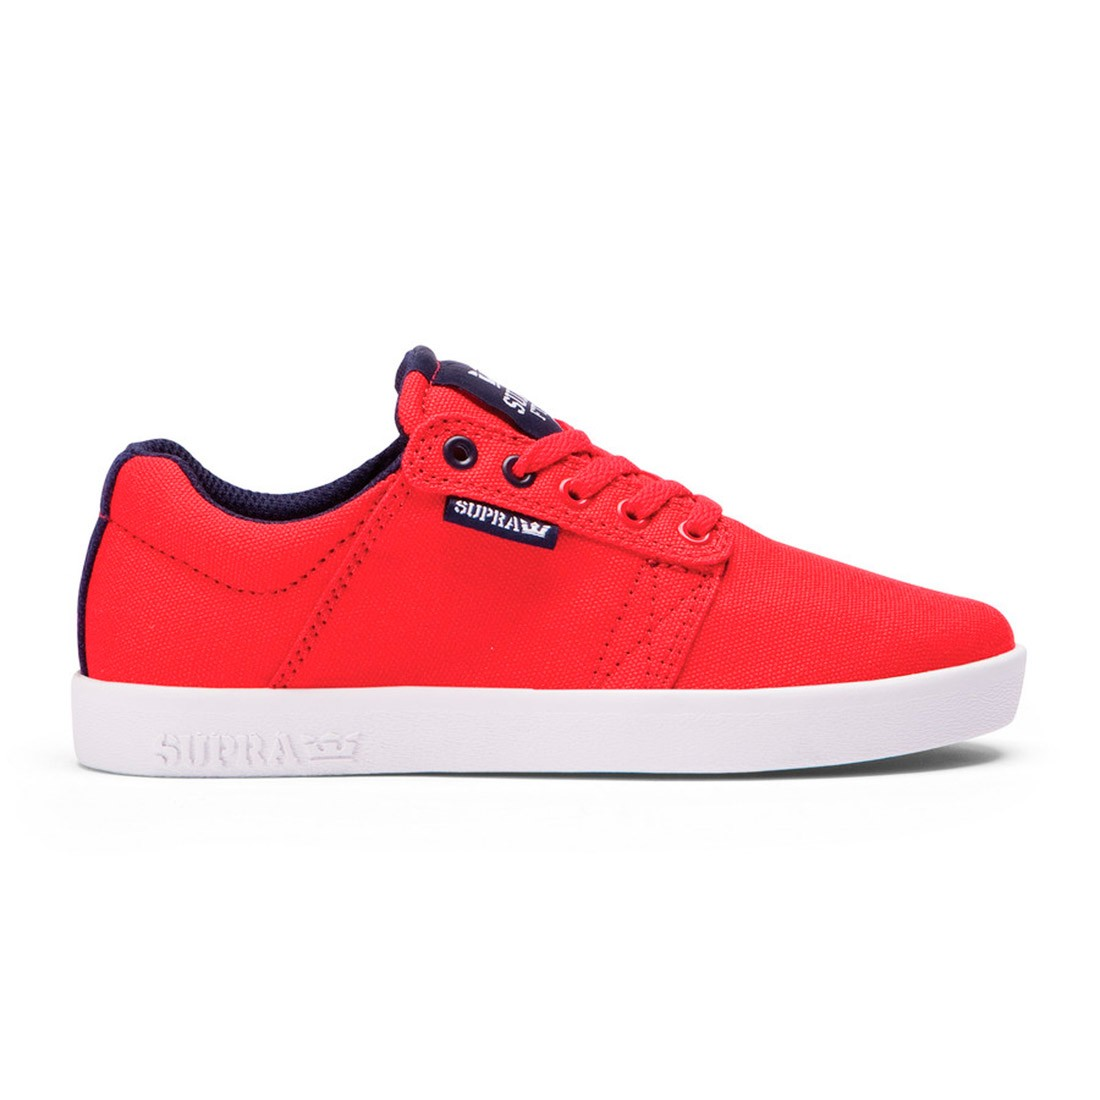 Westway kids red navy white